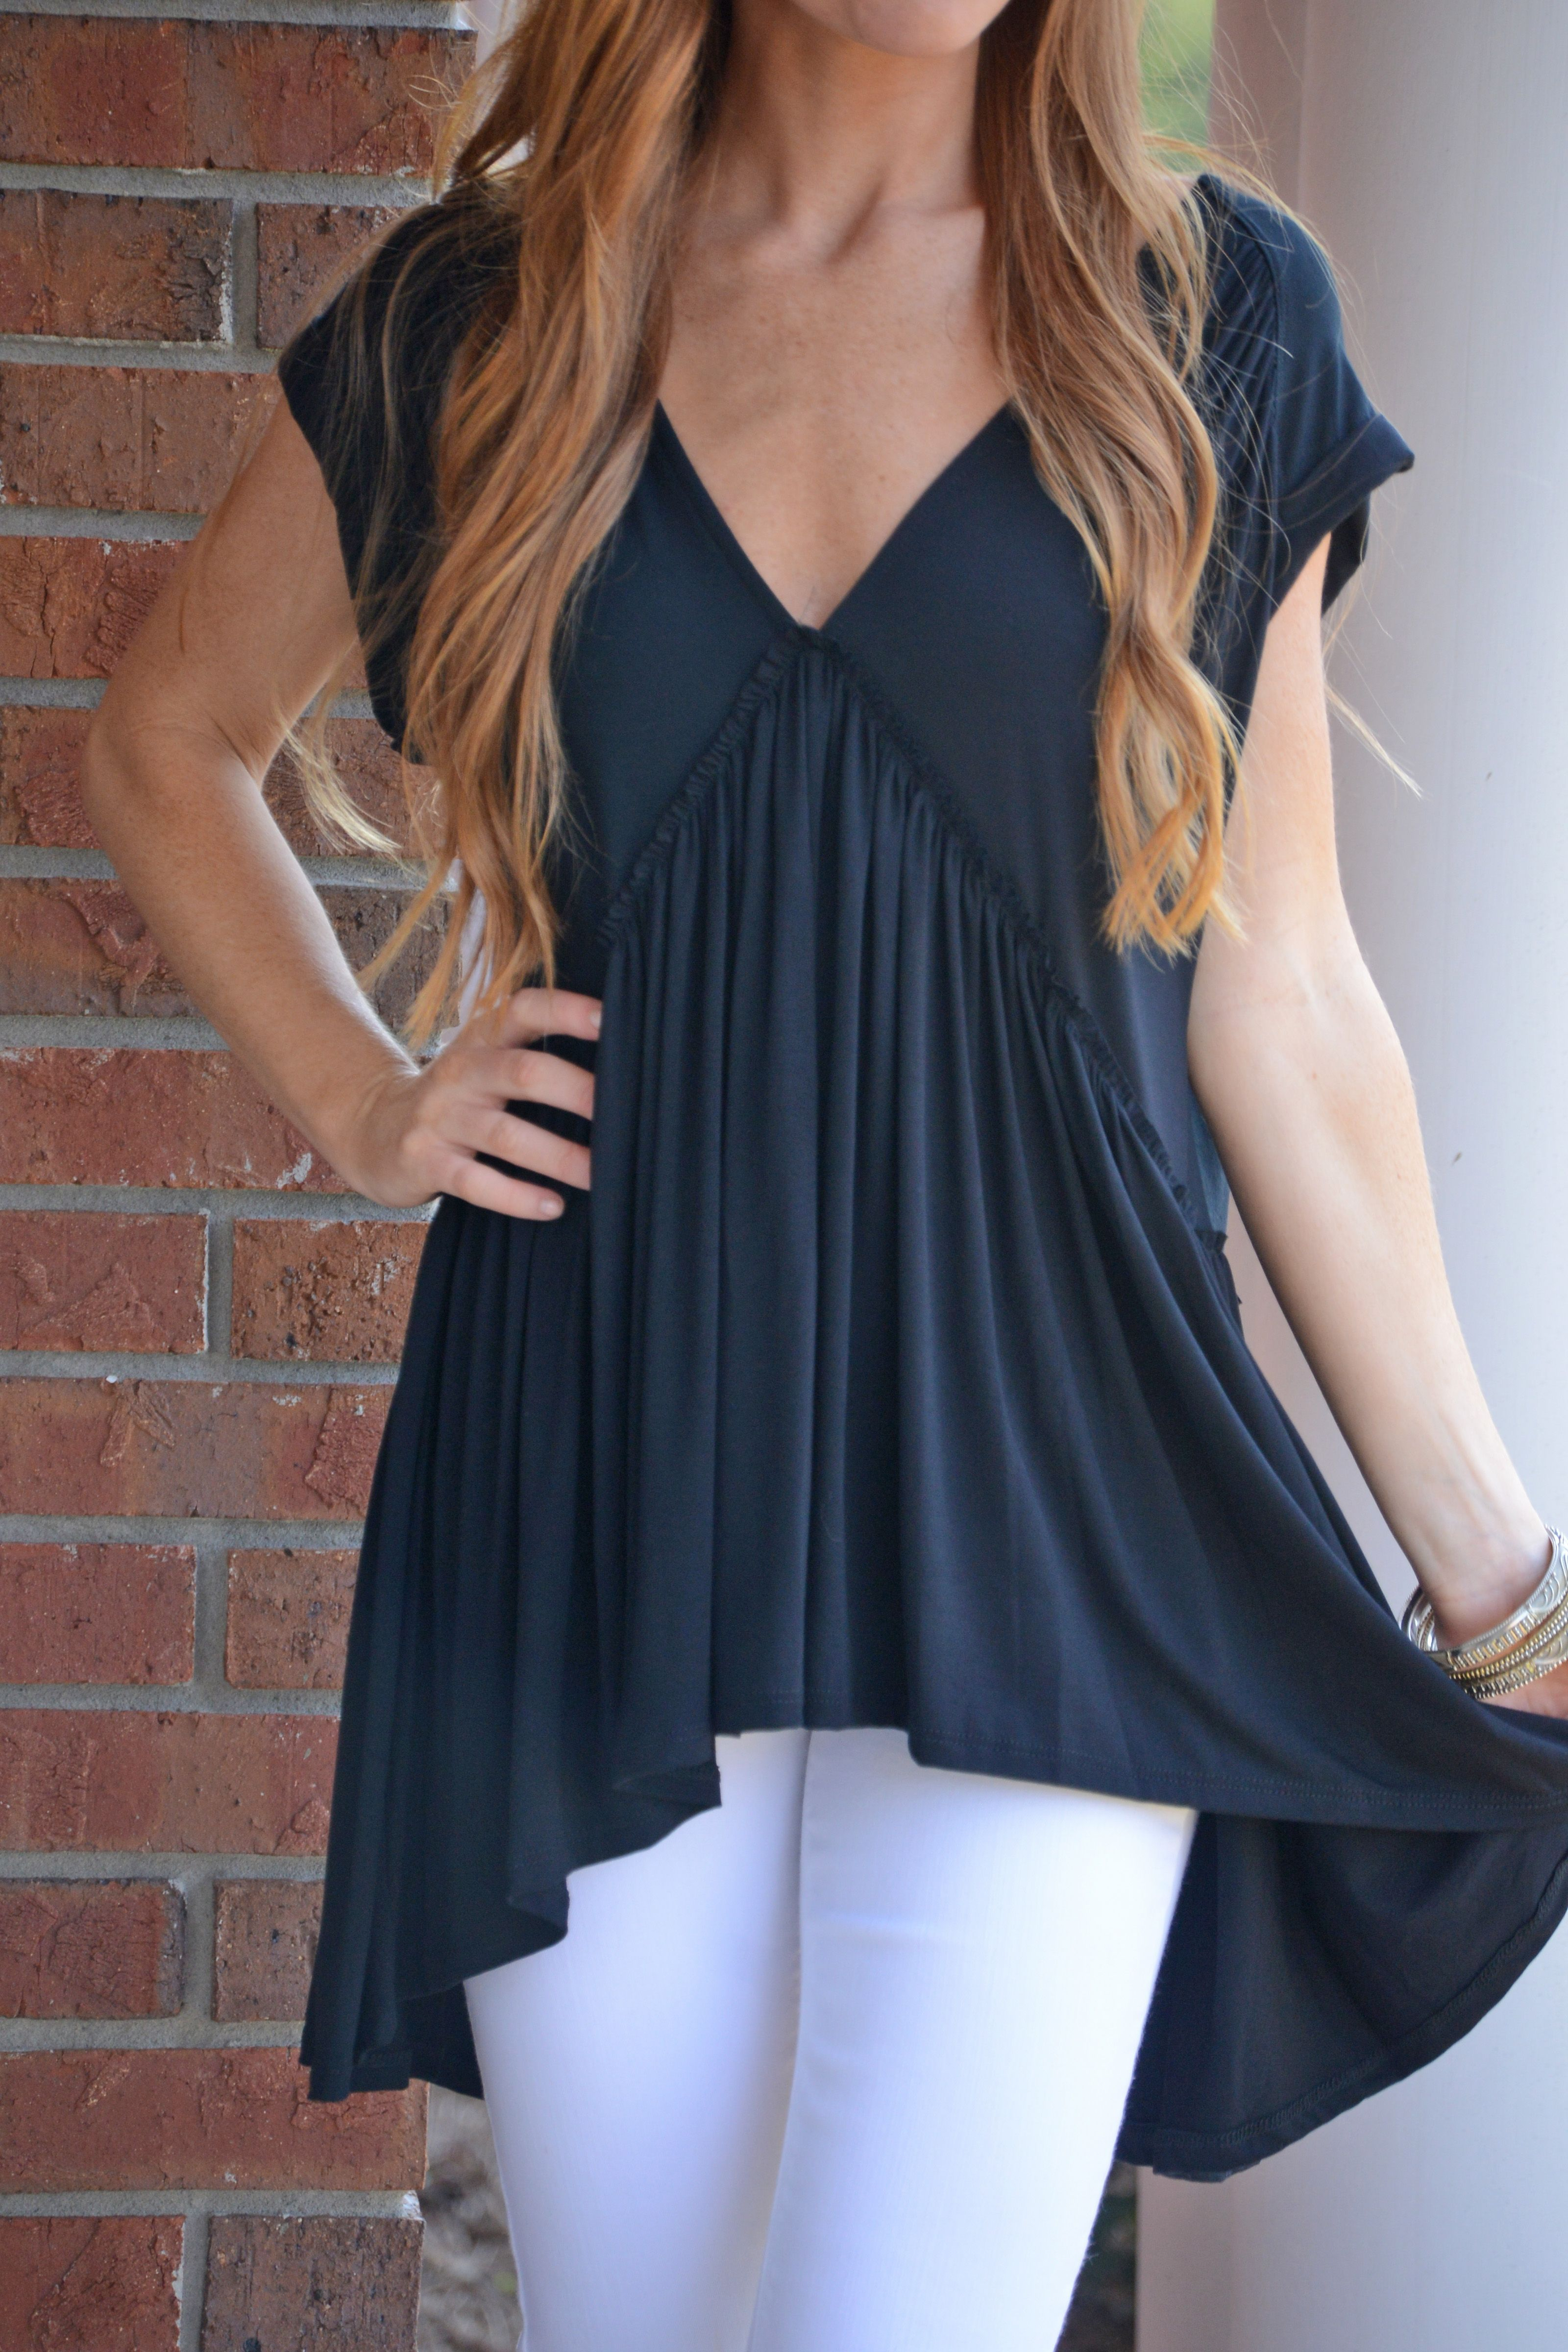 fcf73e69aff81 This babydoll top is so simple